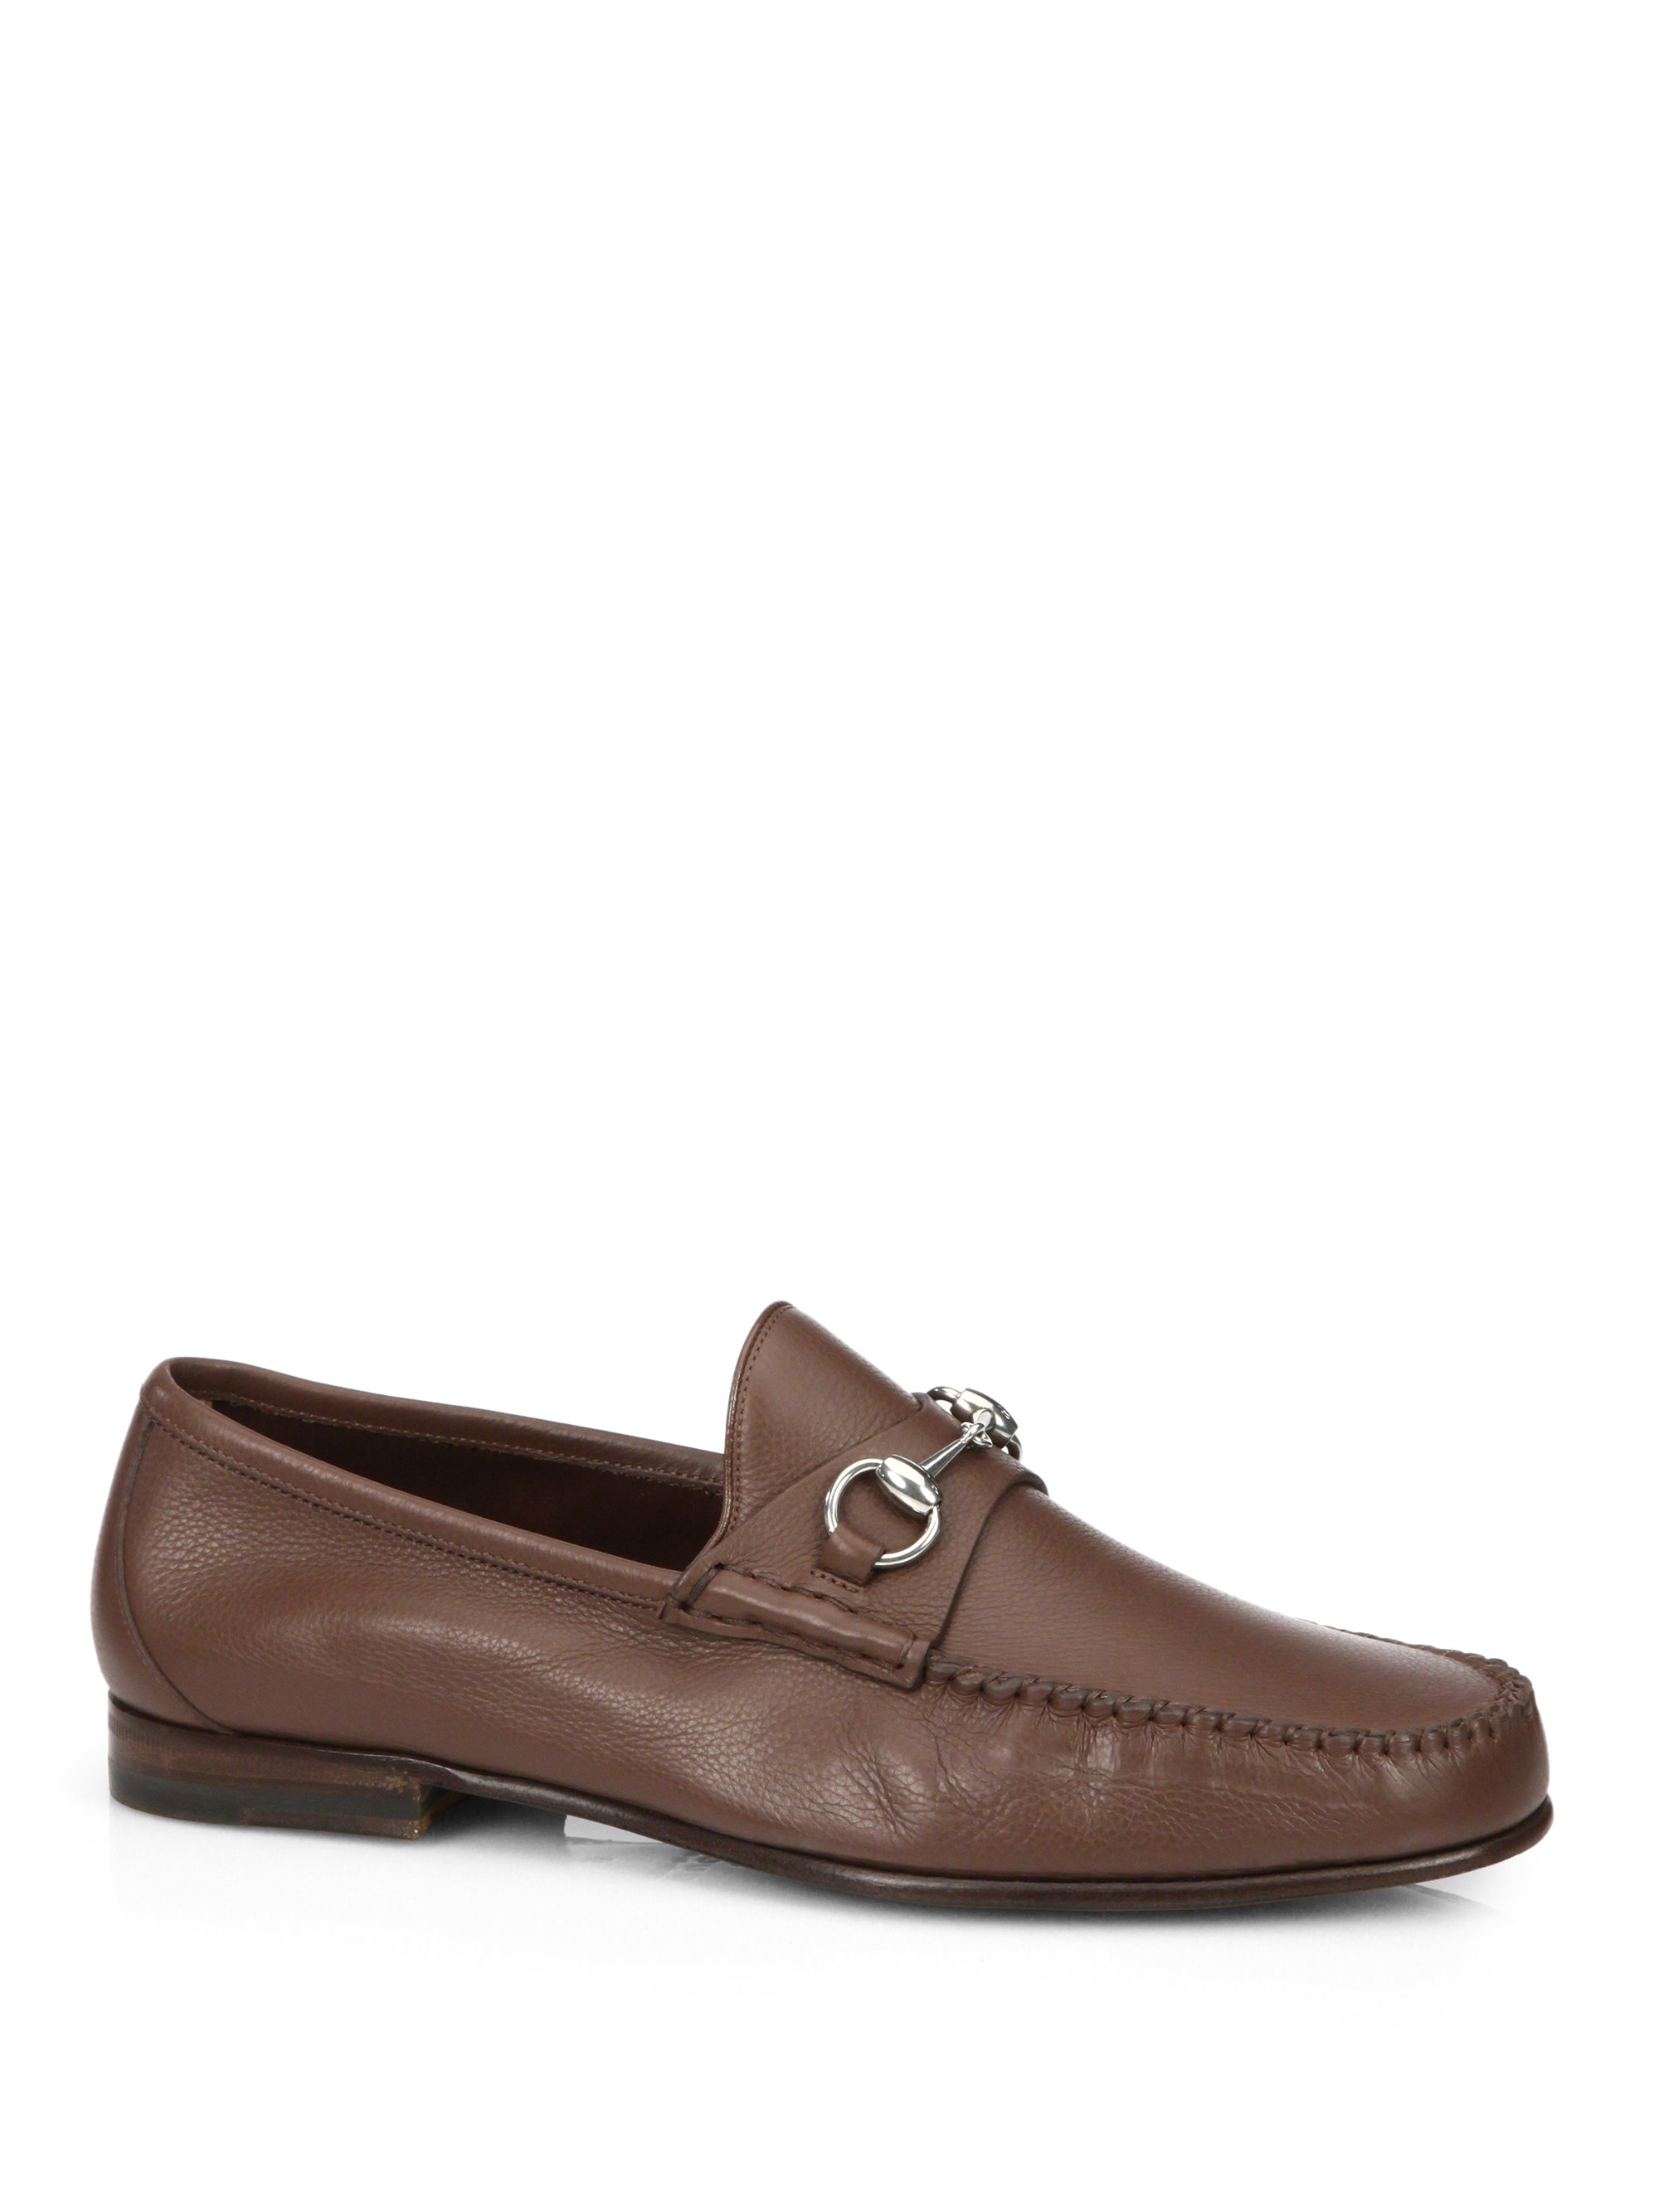 gucci leather horsebit loafers in brown for men lyst. Black Bedroom Furniture Sets. Home Design Ideas